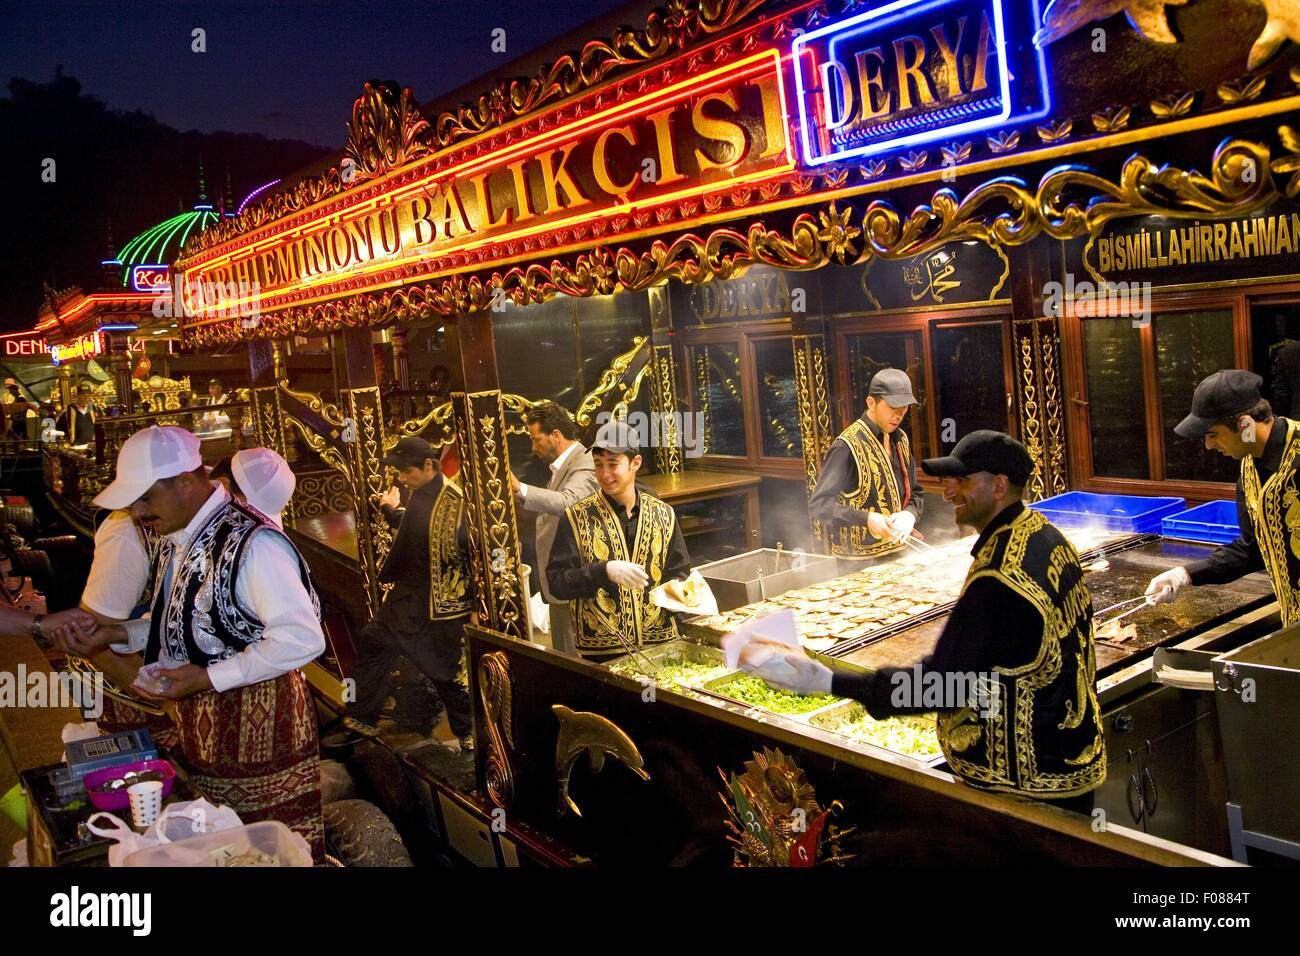 Dealers selling snacks traditionally at night, Istanbul, Turkey - Stock Image